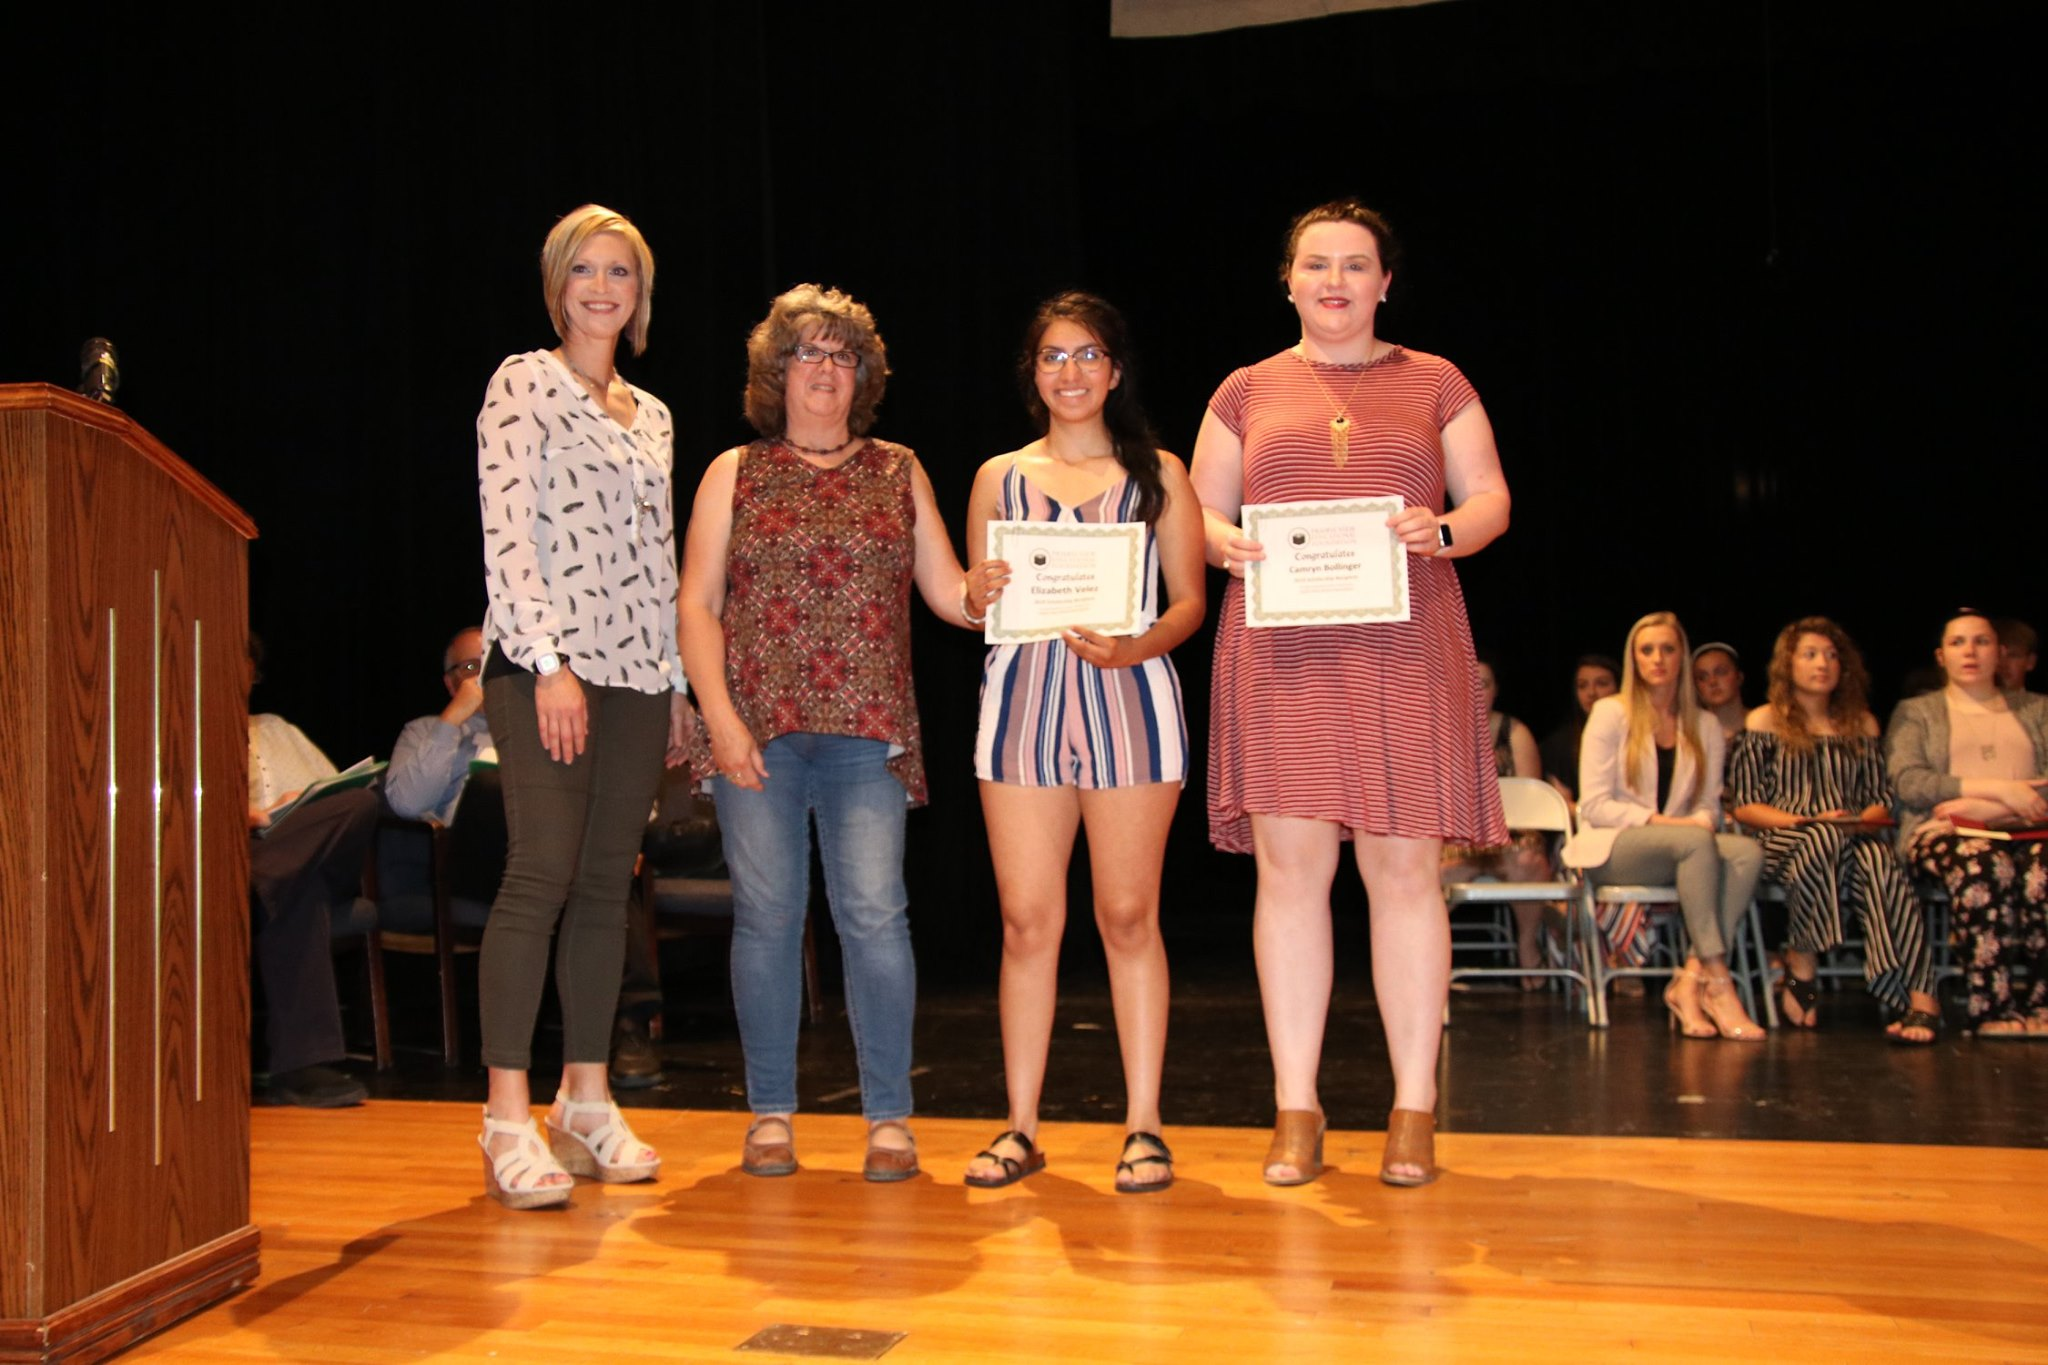 2019 Prairie View Alumni Association Scholarship Recipients: Elizabeth Velez and Camryn Bollinger